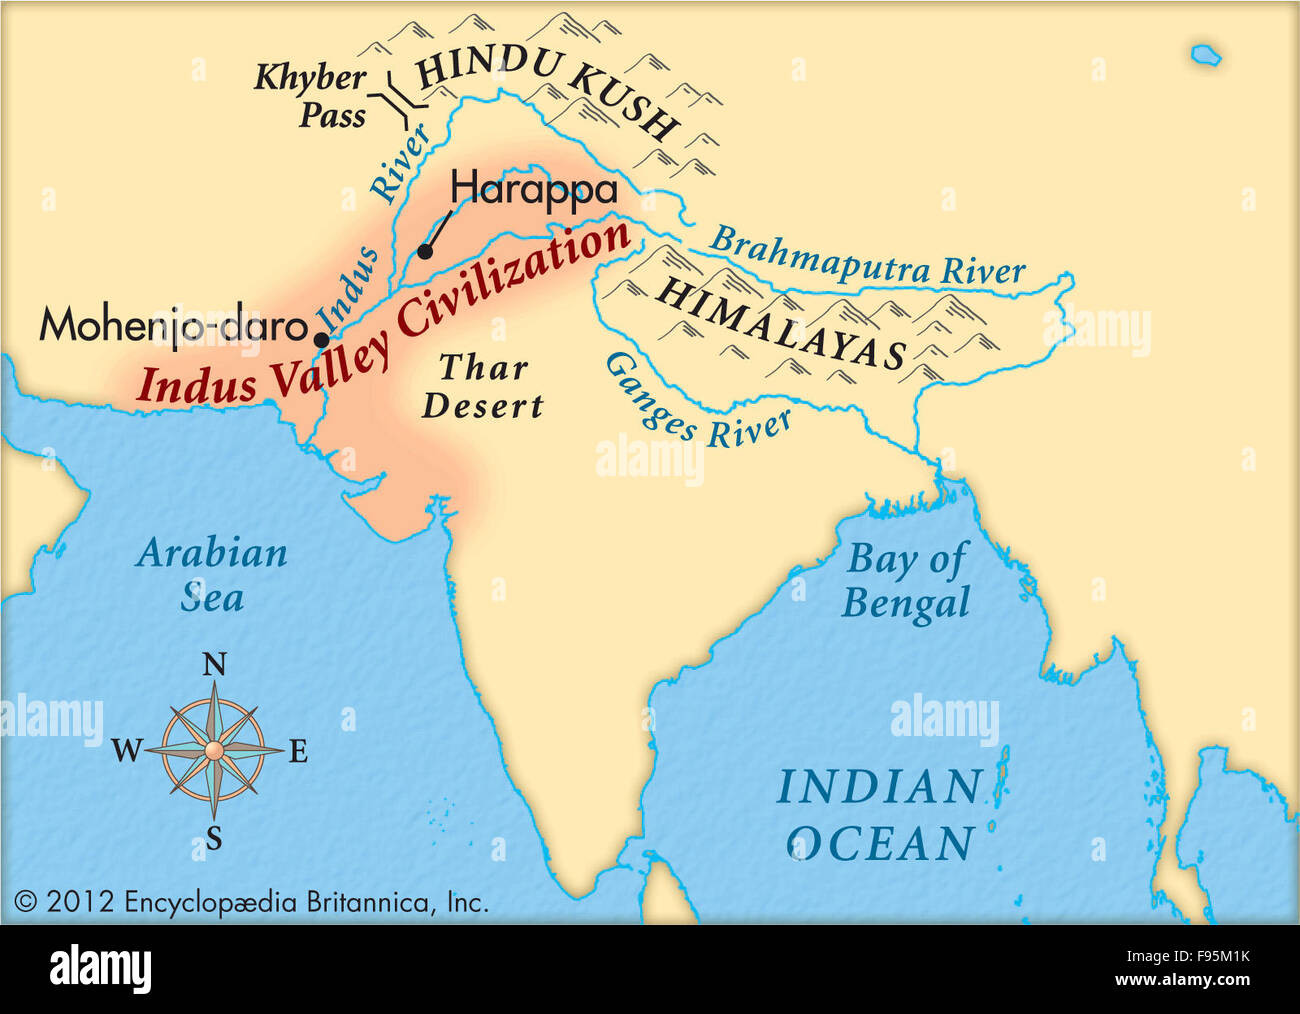 Harappa World Map.Harappa Stock Photos Harappa Stock Images Alamy